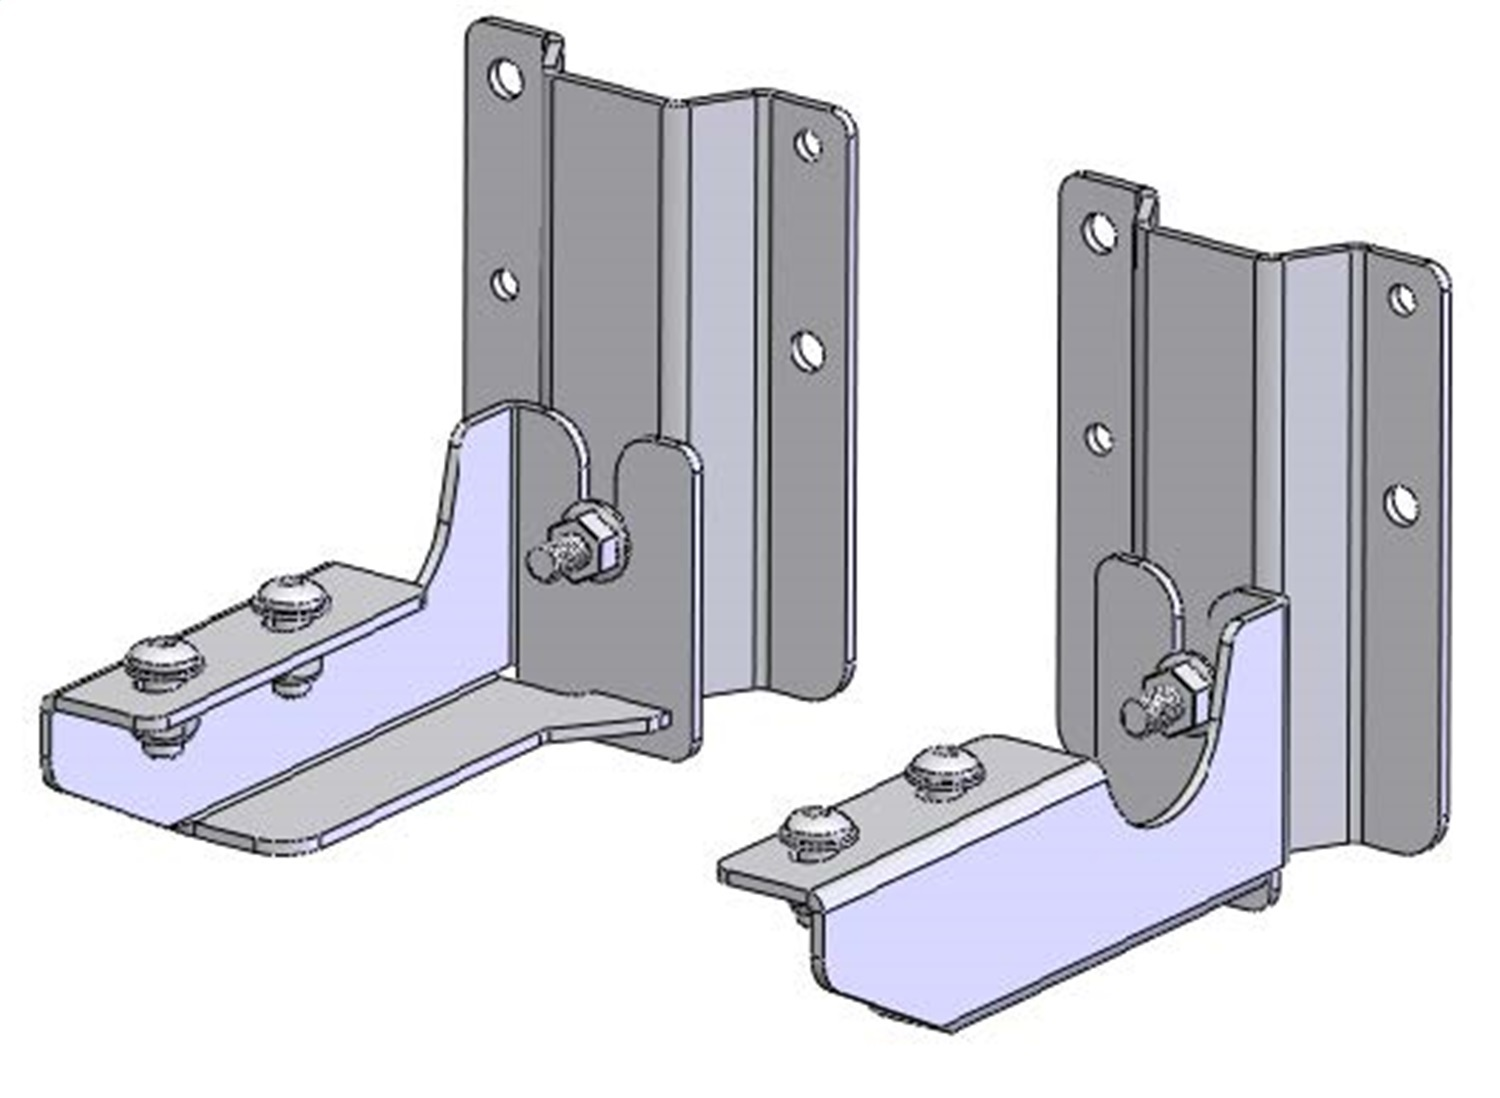 ARB, USA 813408 Awning Quick Release Bracket Kit